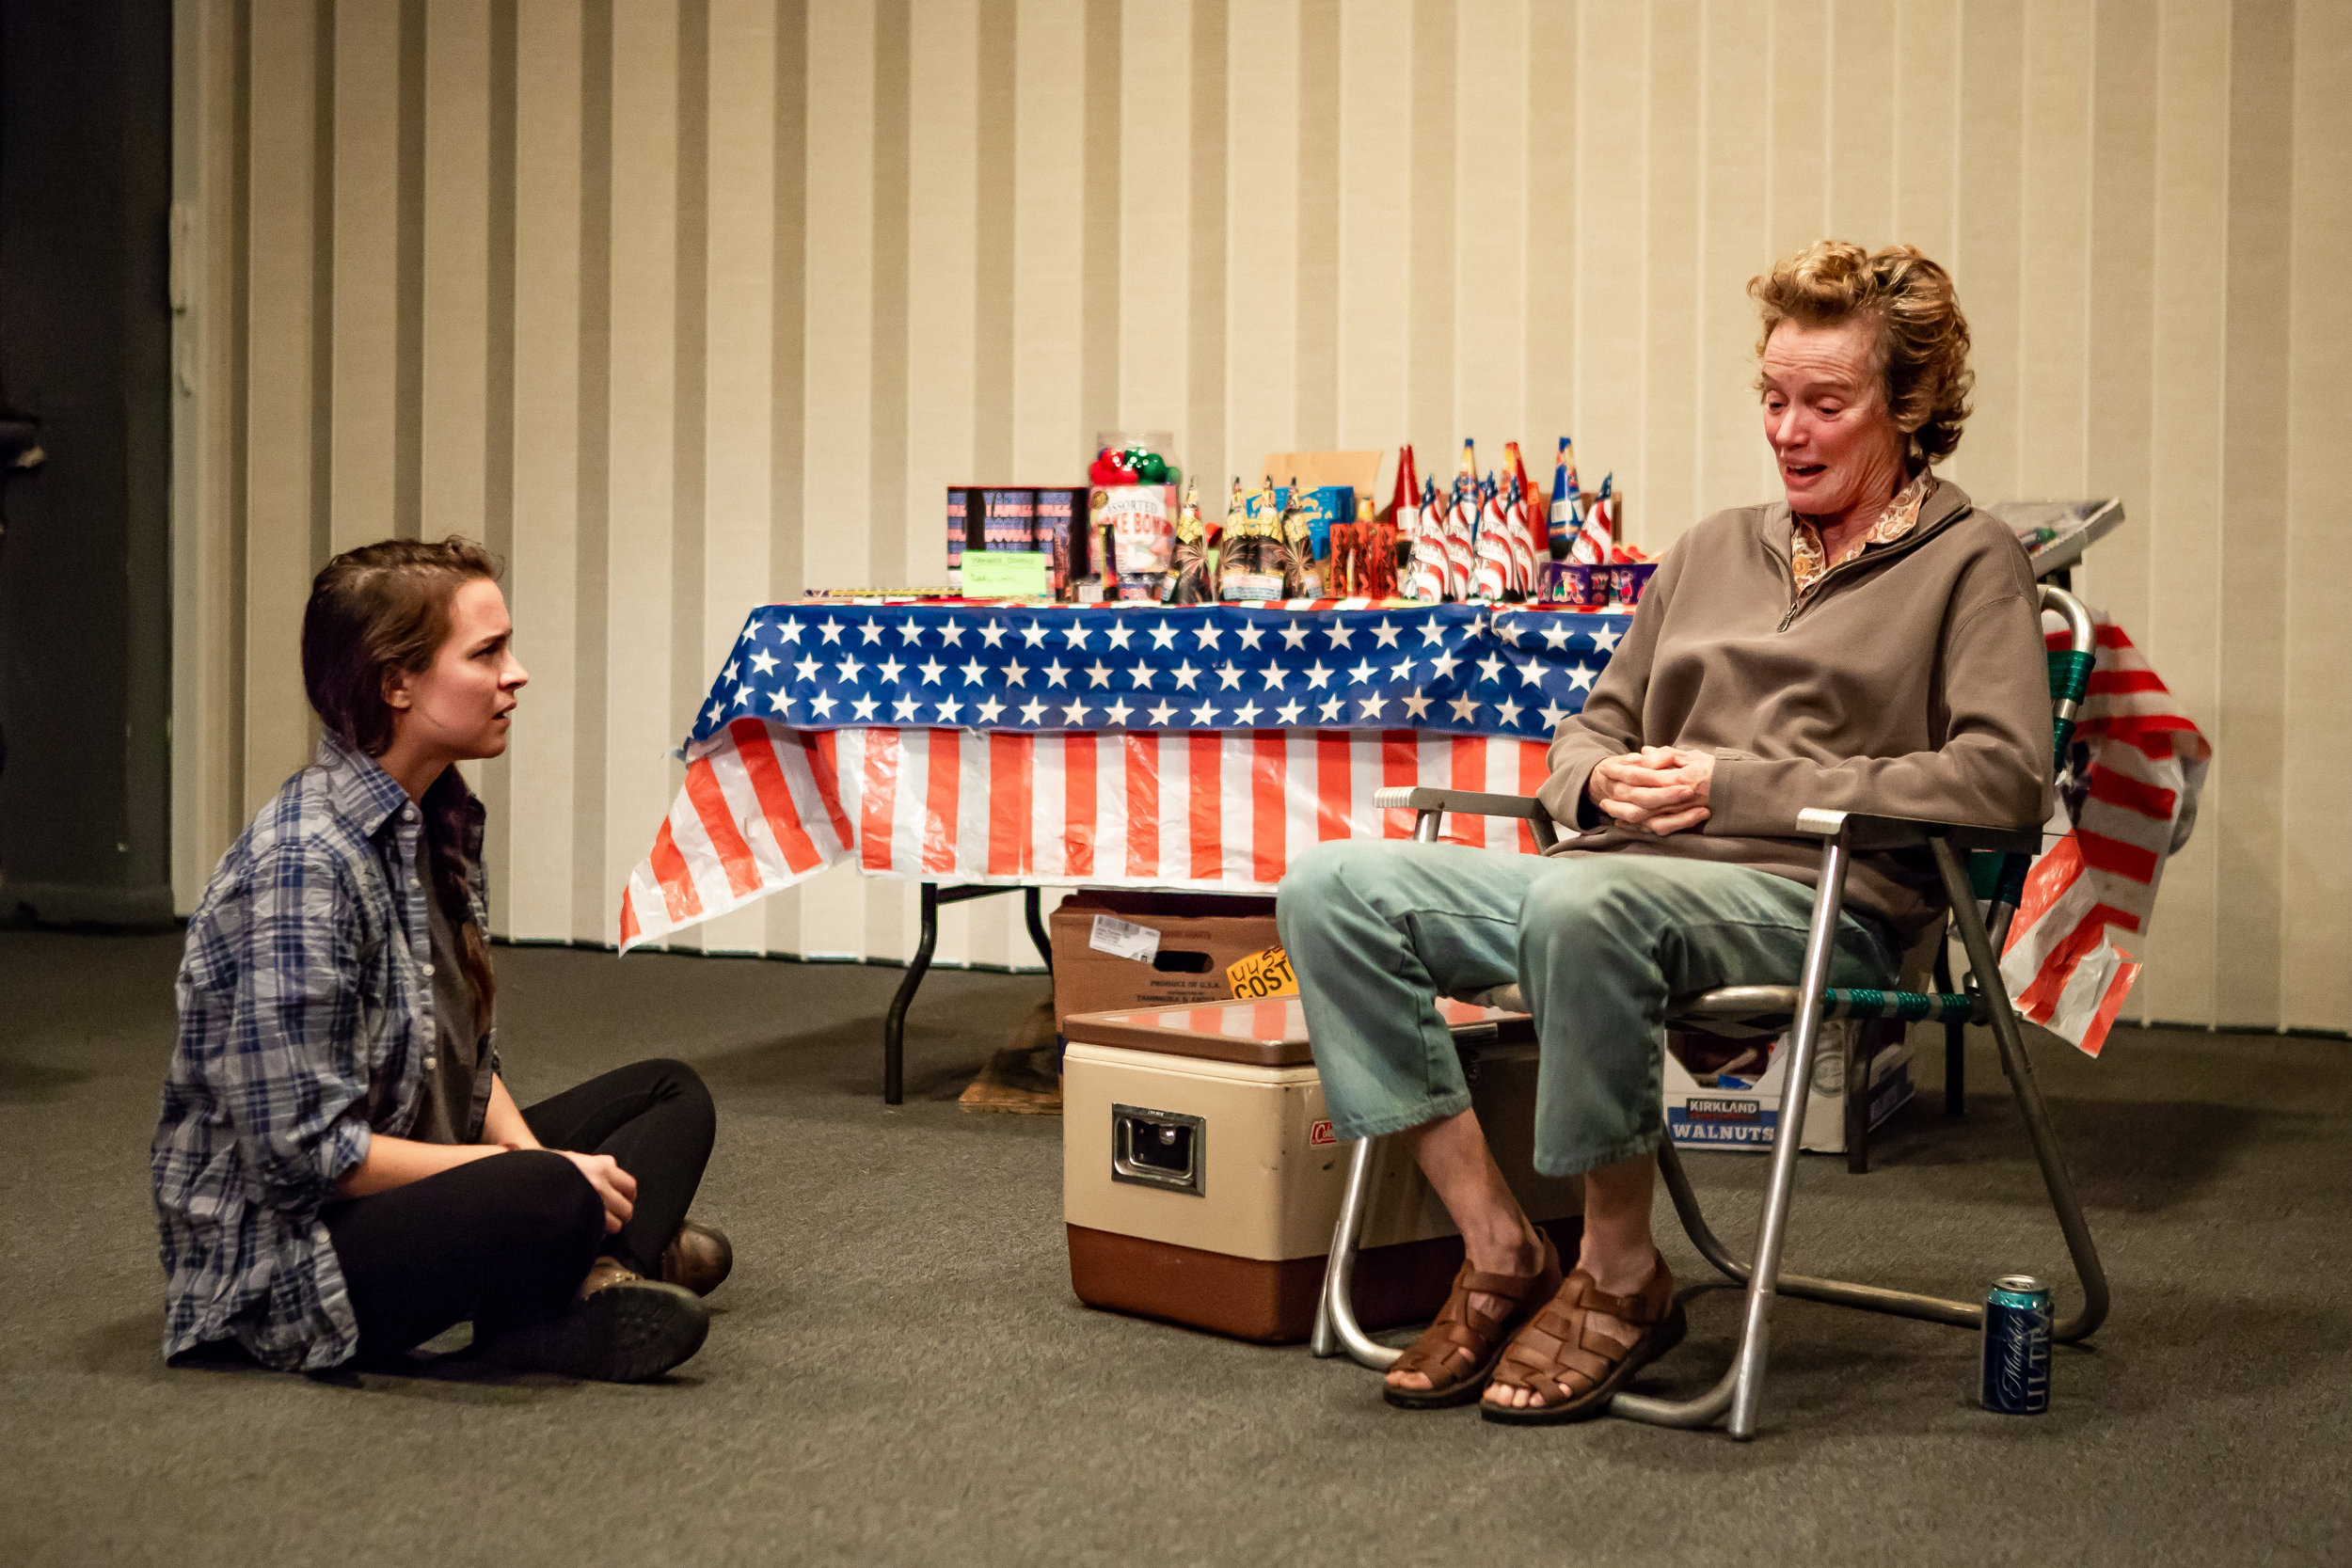 Leah Karpel and Kristin Griffith in LEWISTON, part of LEWISTON : CLARKSTON at Rattlestick Playwrights Theater - Photo by Jeremy Daniel (4).JPG